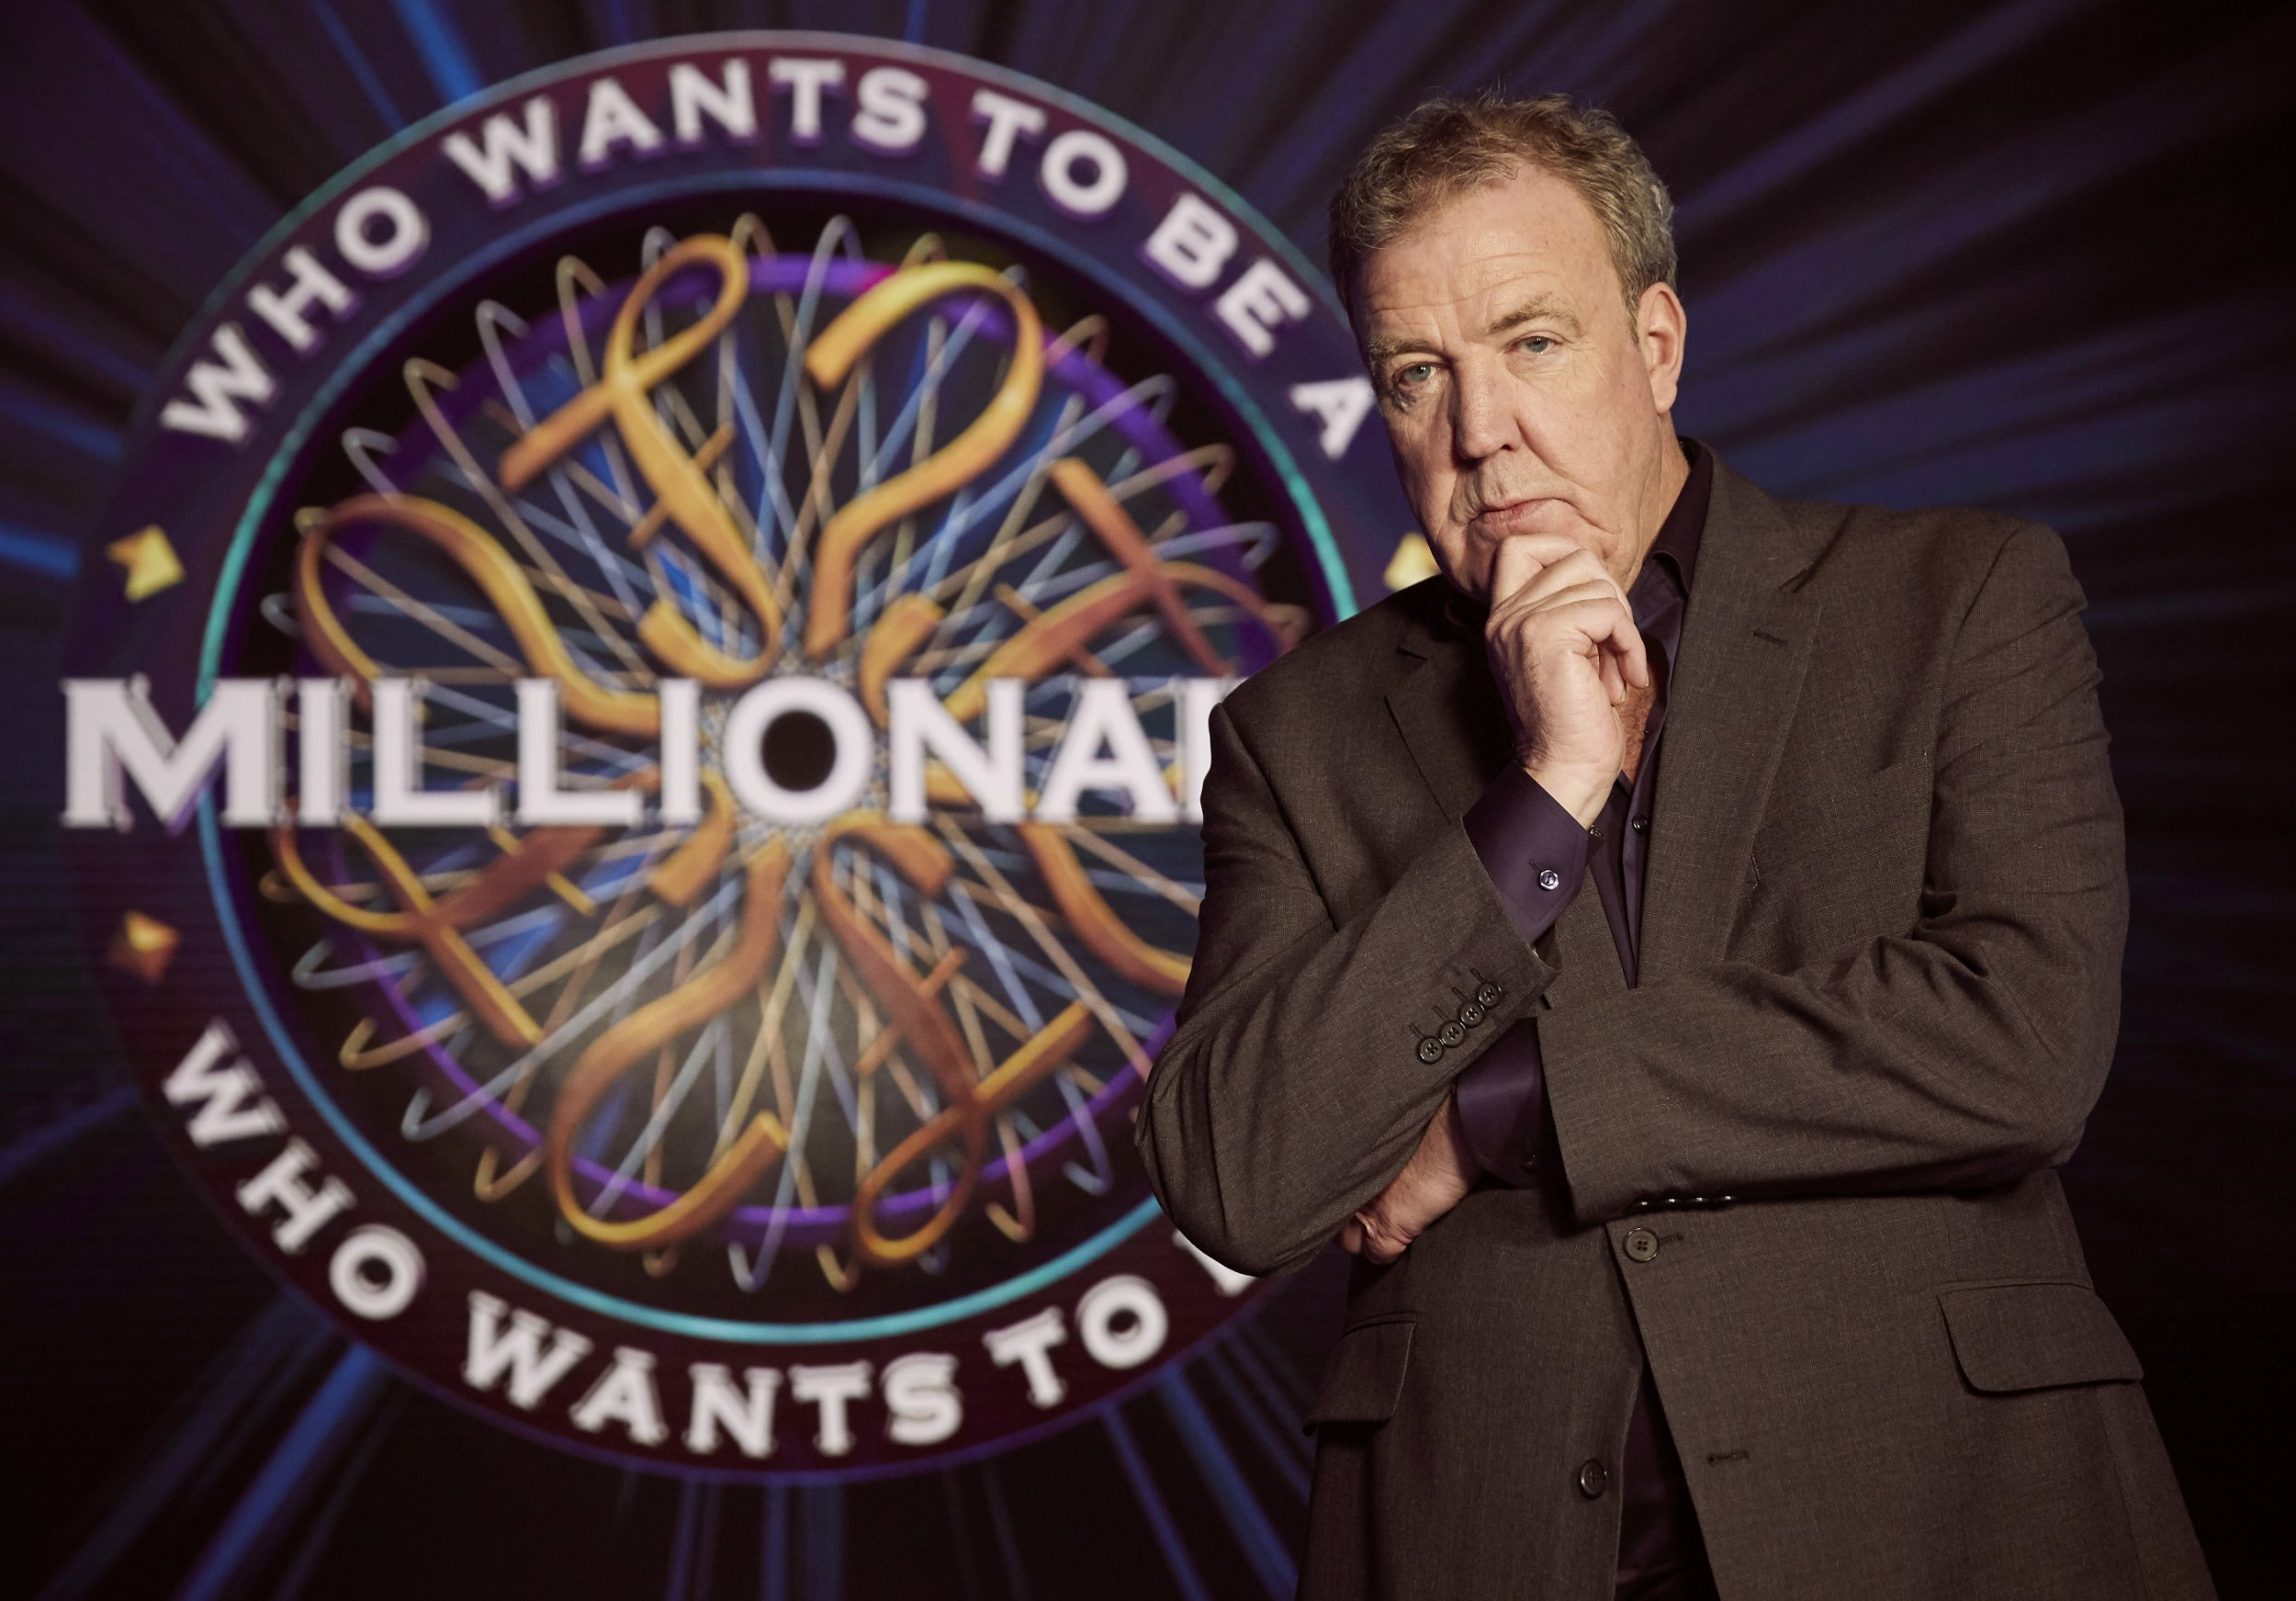 Jeremy Clarkson is changing his attitude on Who Wants To Be A Millionaire? tonight